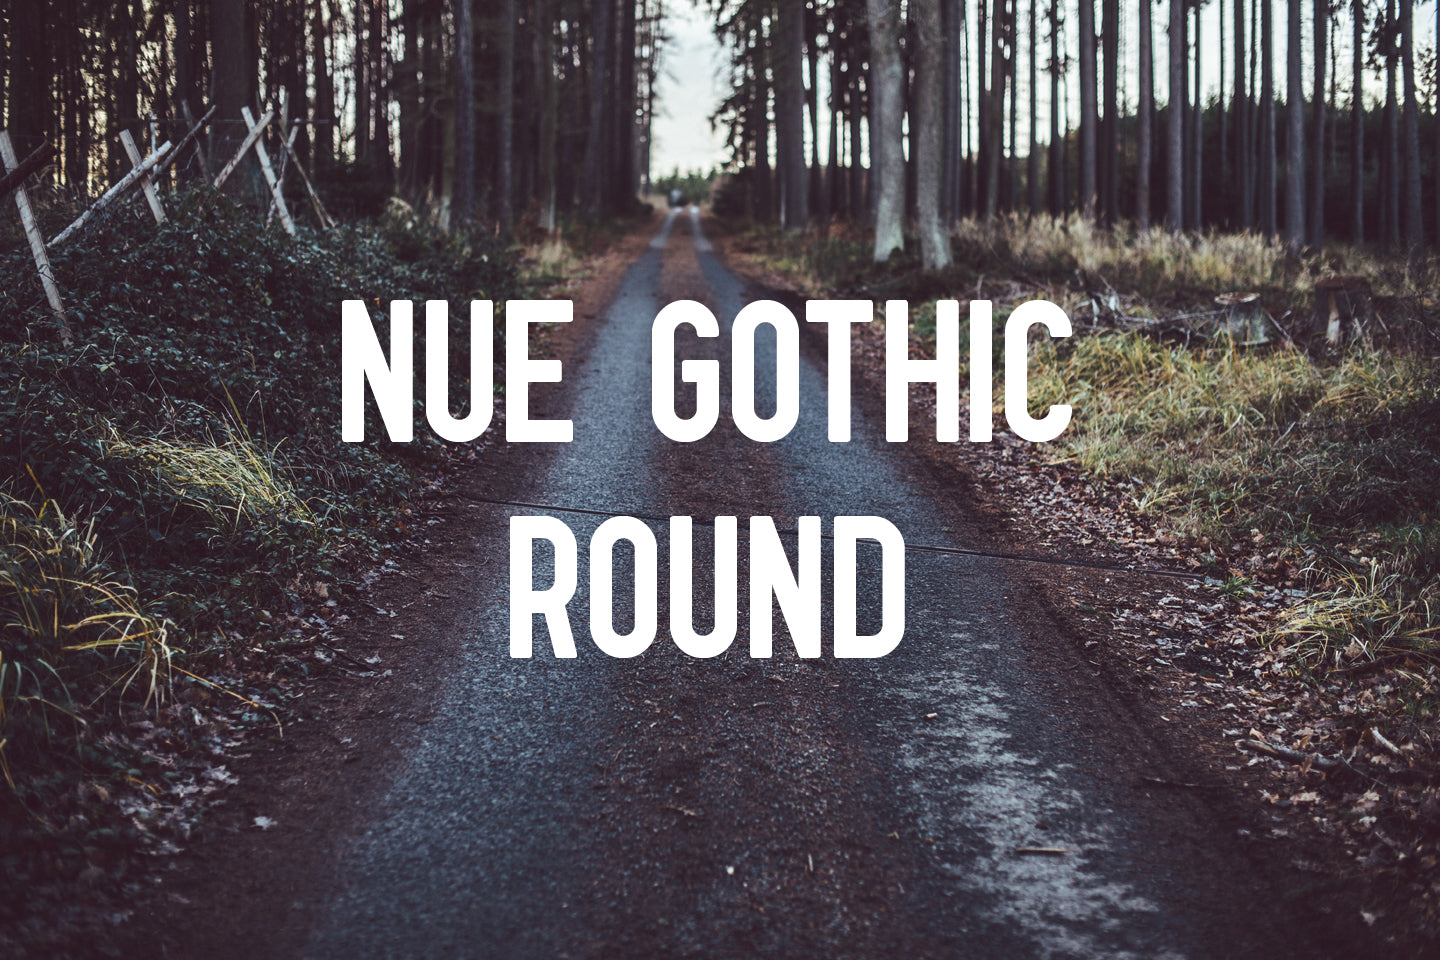 Nue Gothic Grotesque Gothic font by Out of Step Font Company